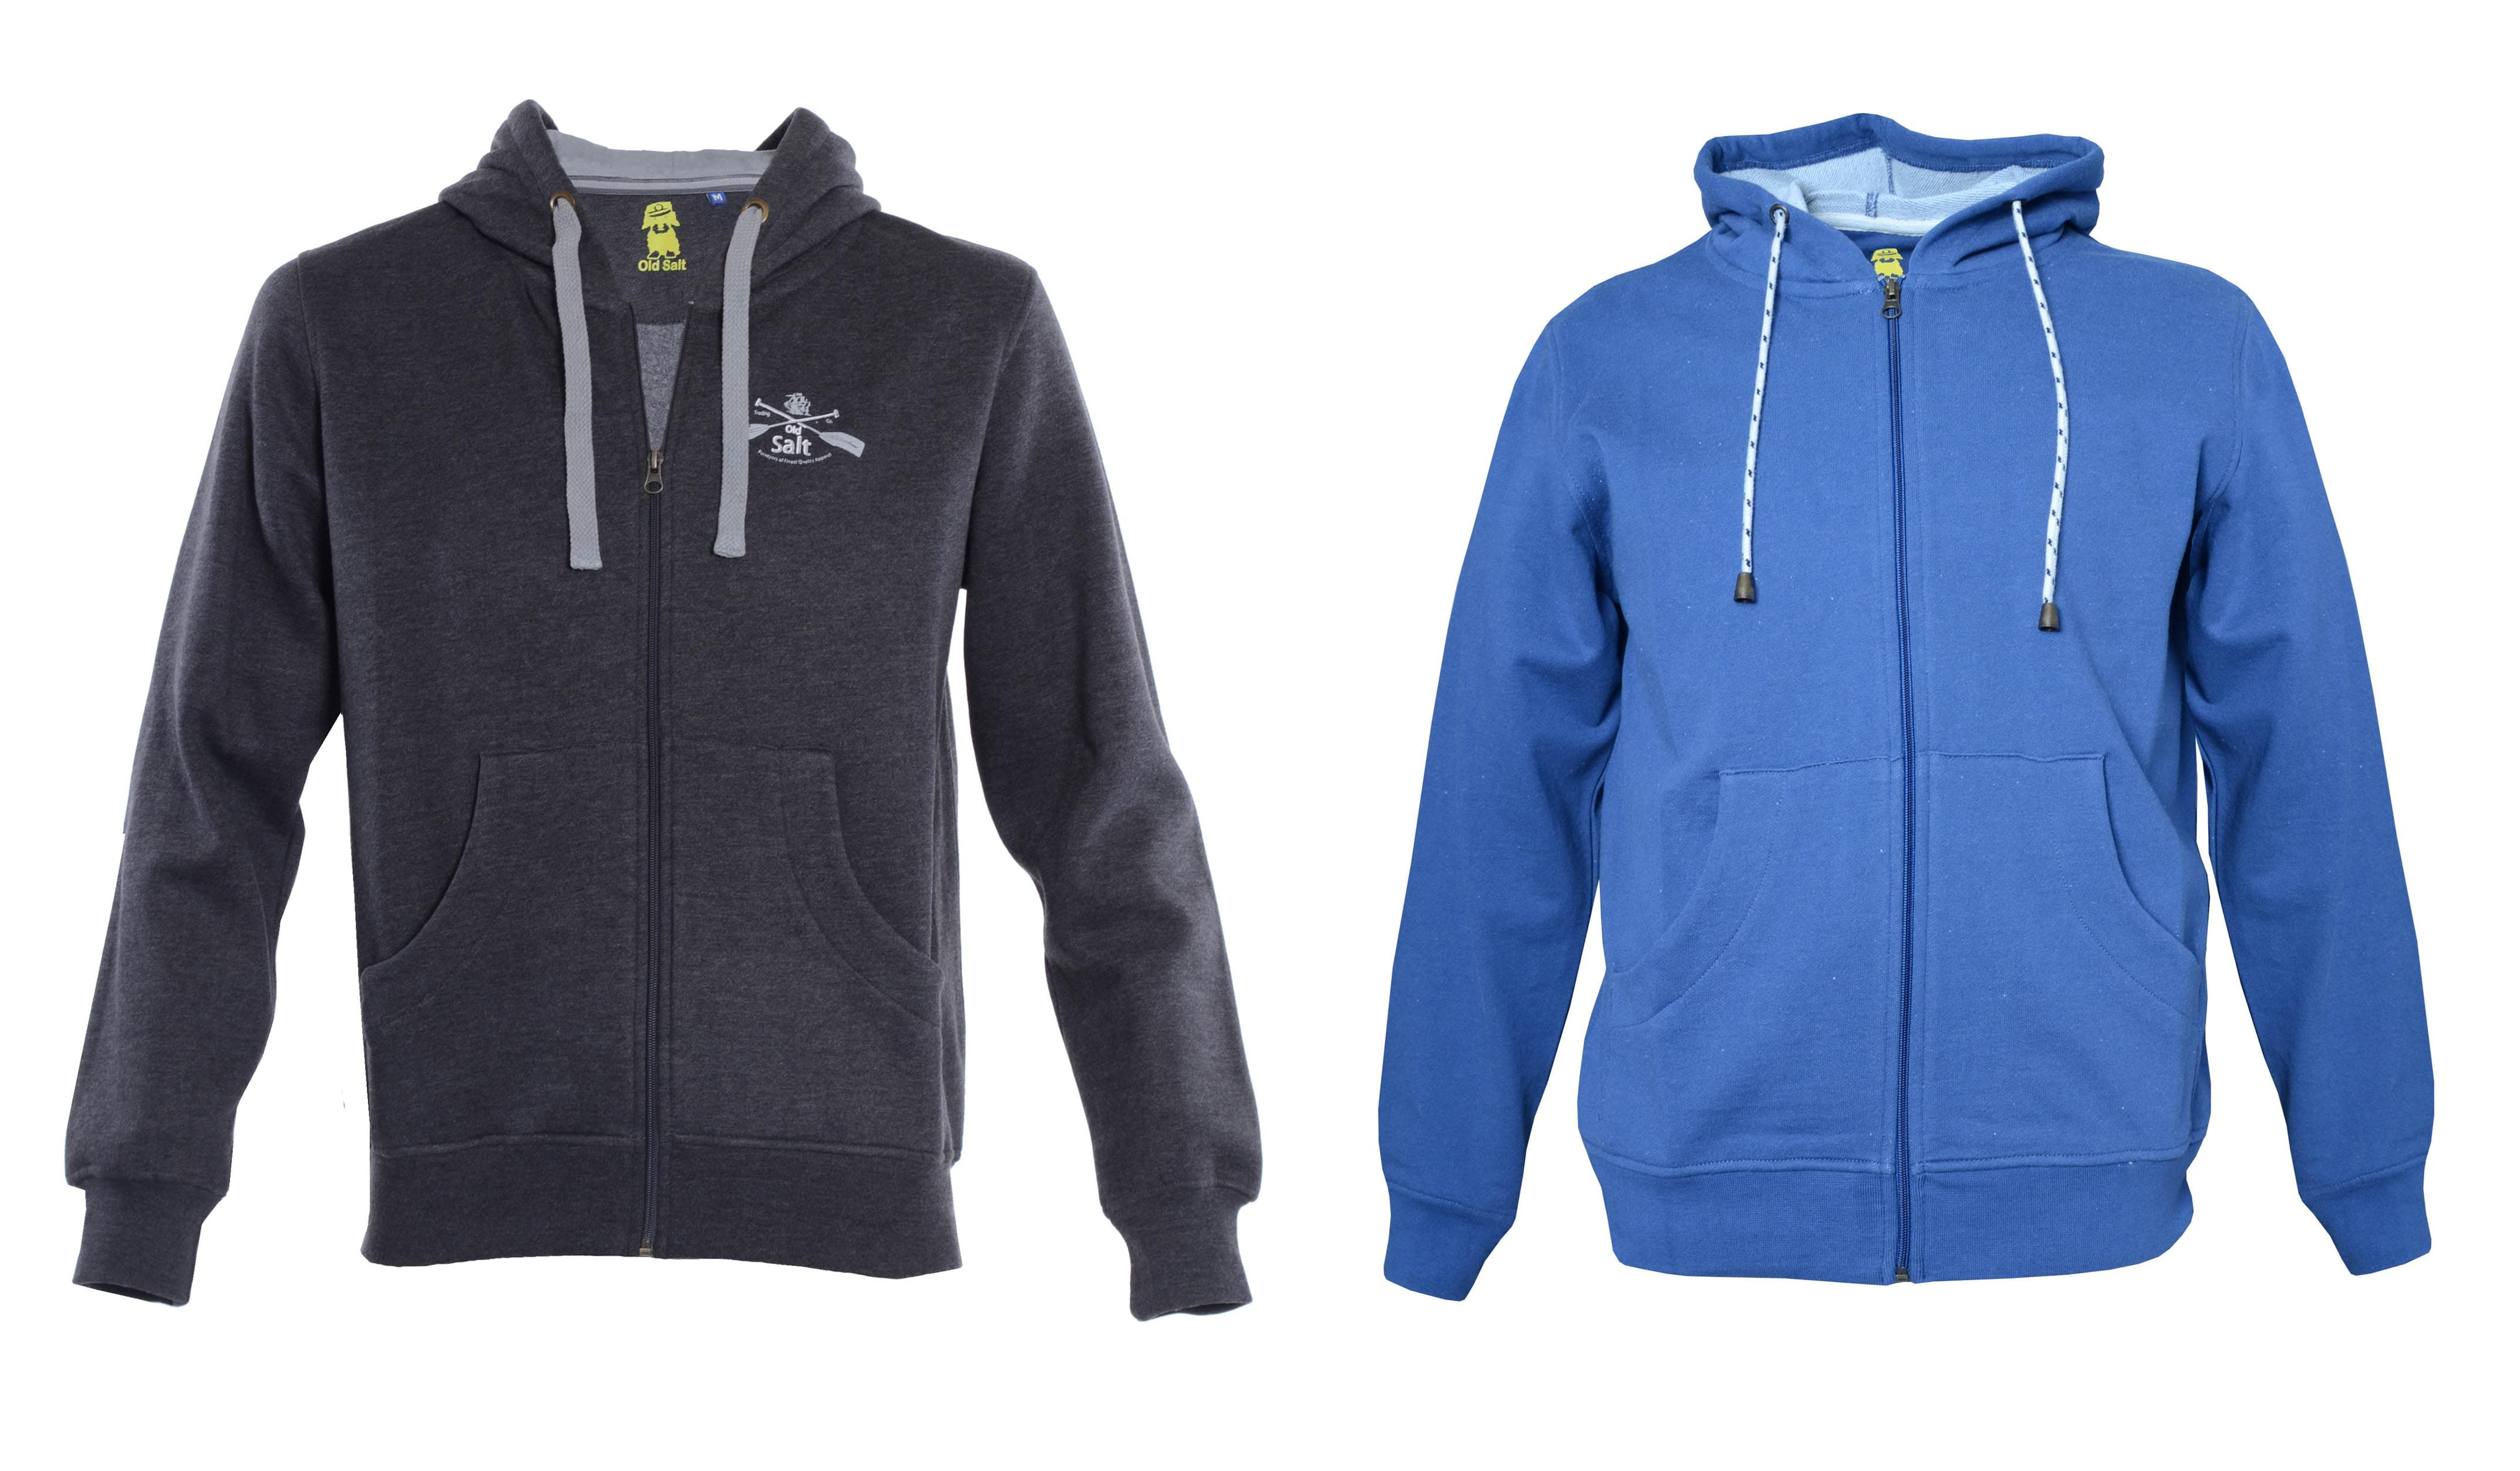 Shop Old Salt by Double TWO Hoodies. Perfect for Glastonbury!